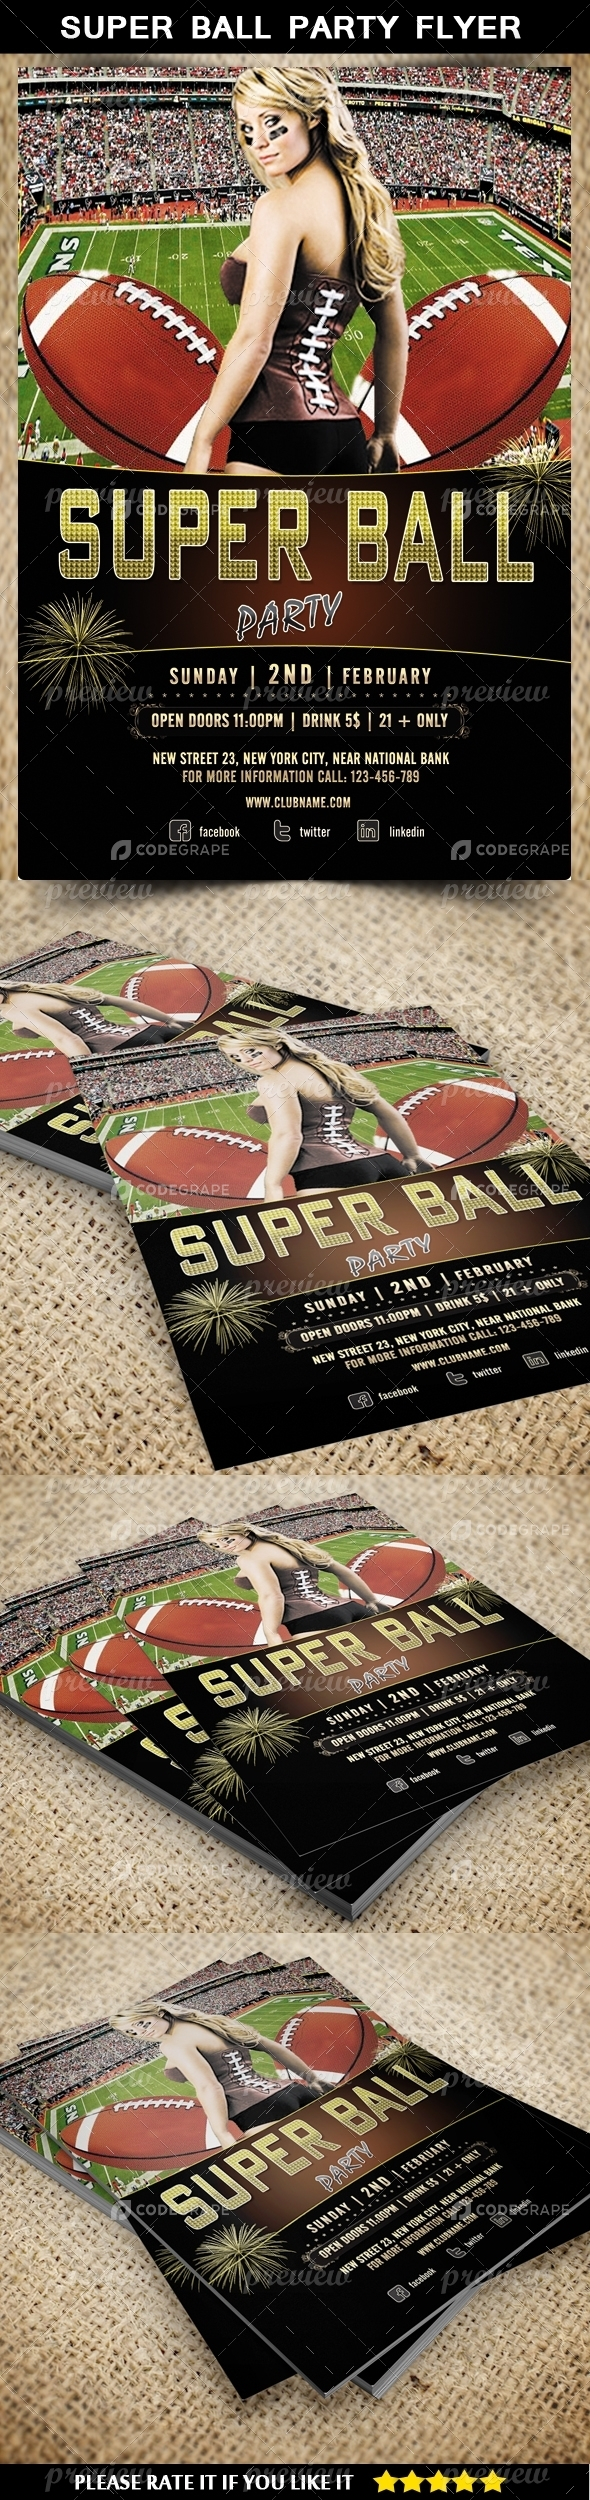 Super Ball Party Flyer Template